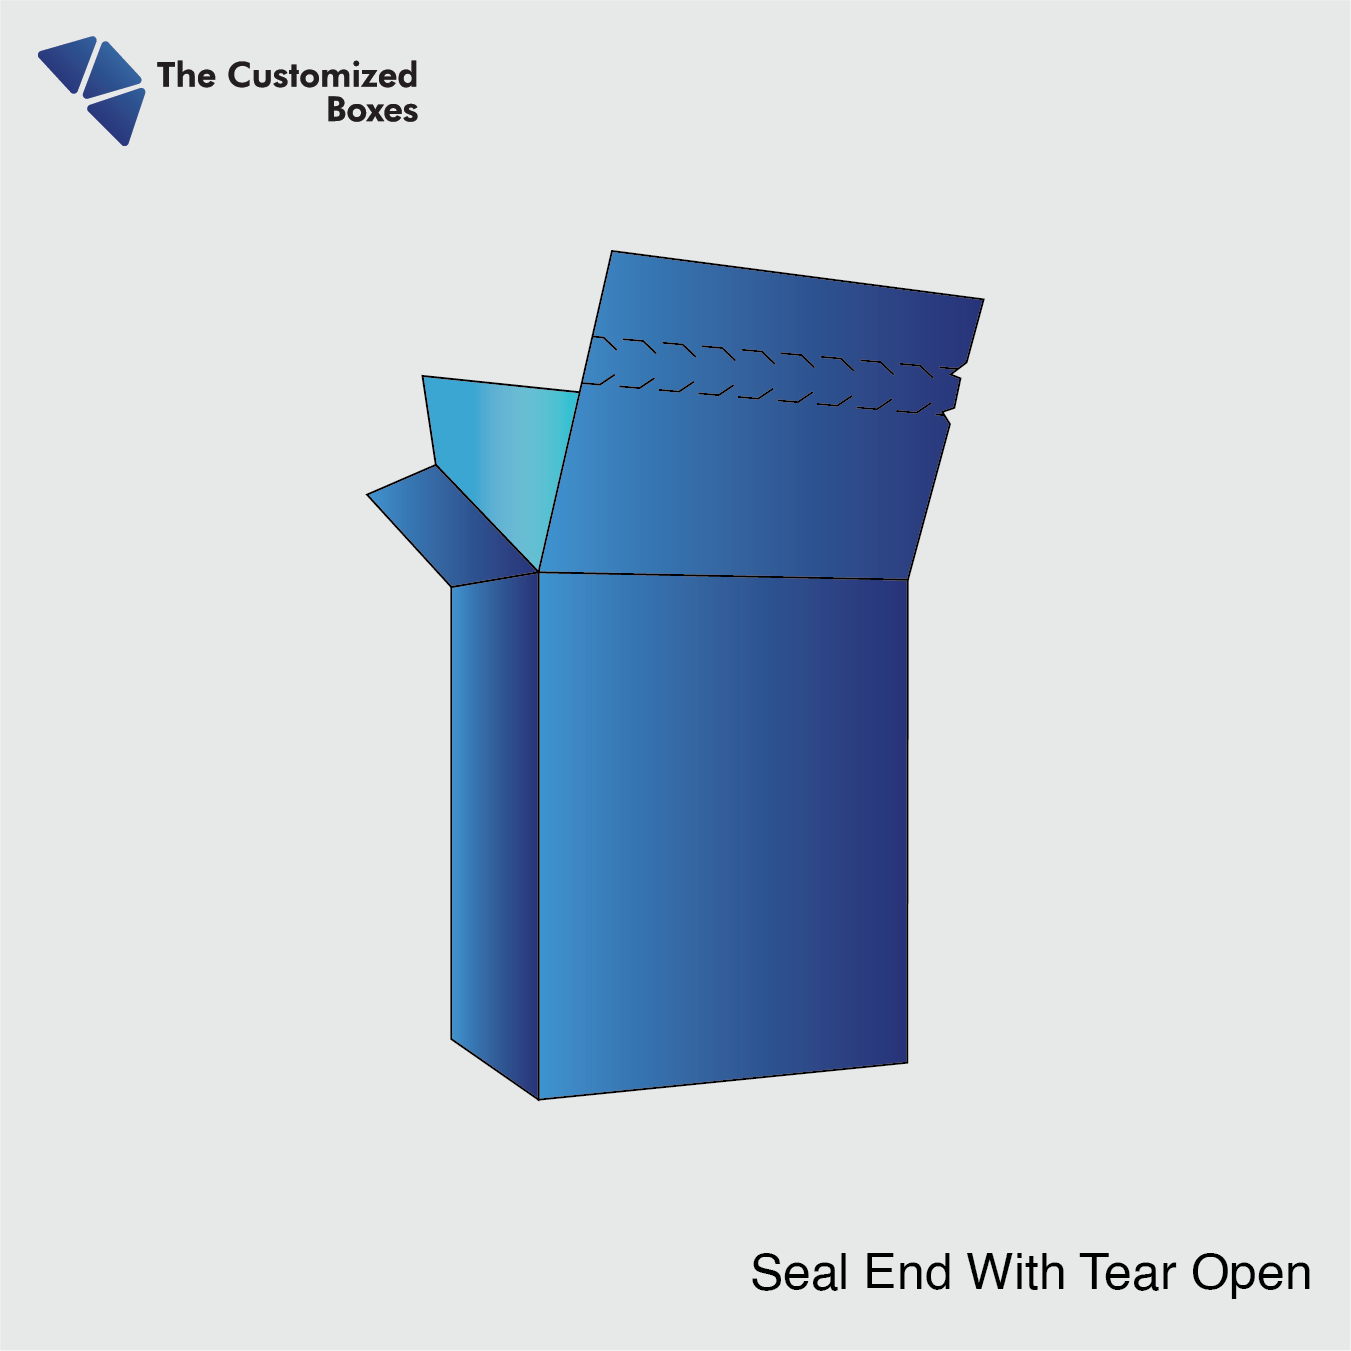 Seal End With Tear Open (1)